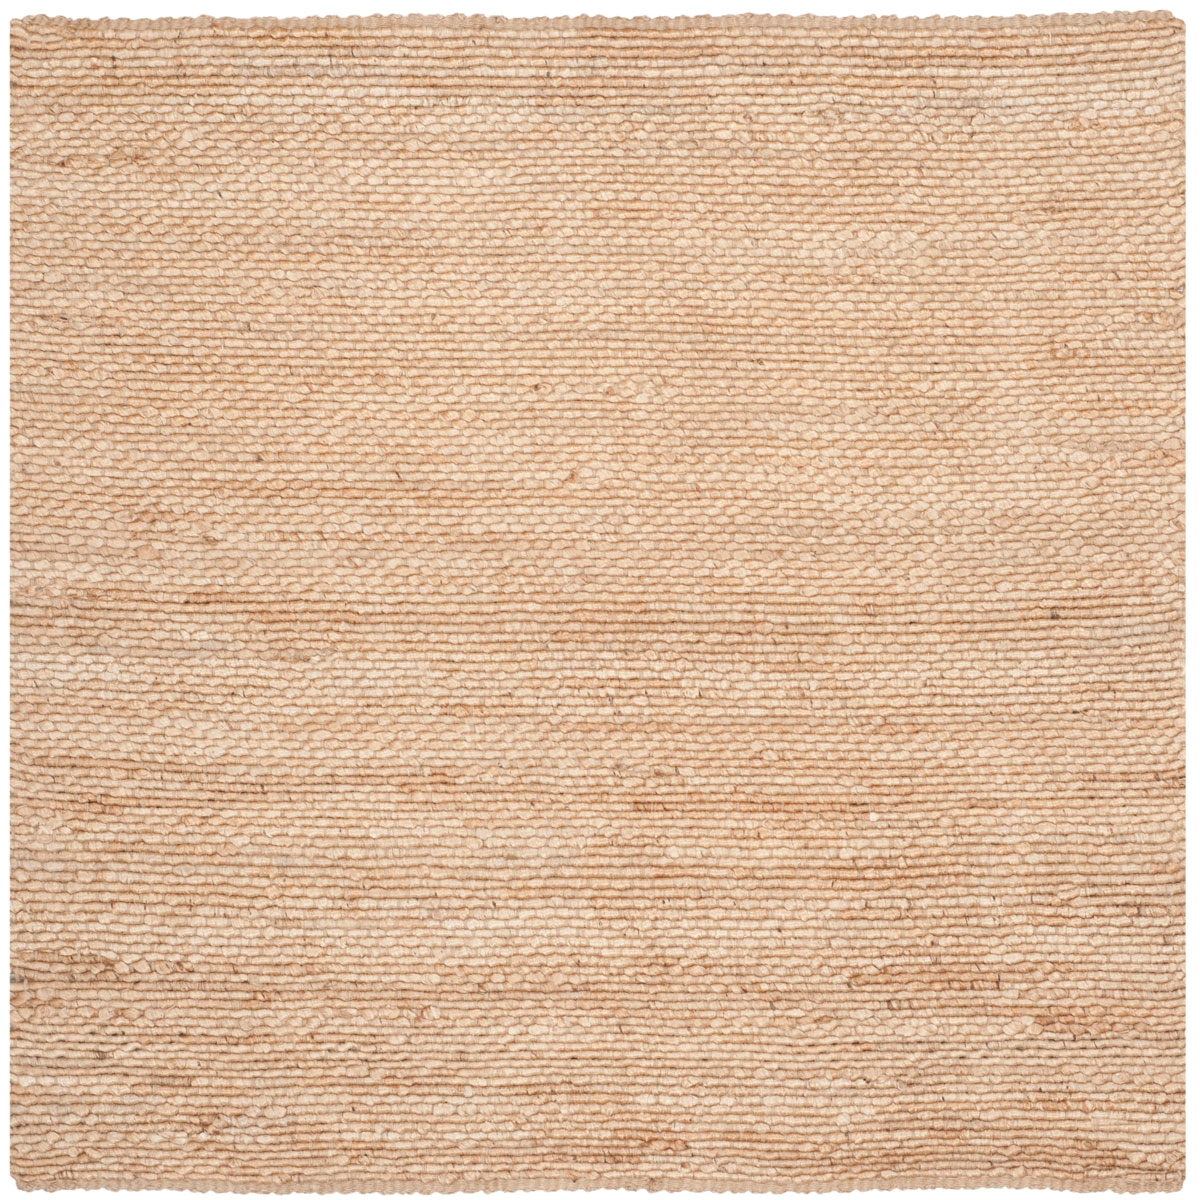 rug natural fiber area rugs safavieh round square chinese carpets and large patio black white aztec